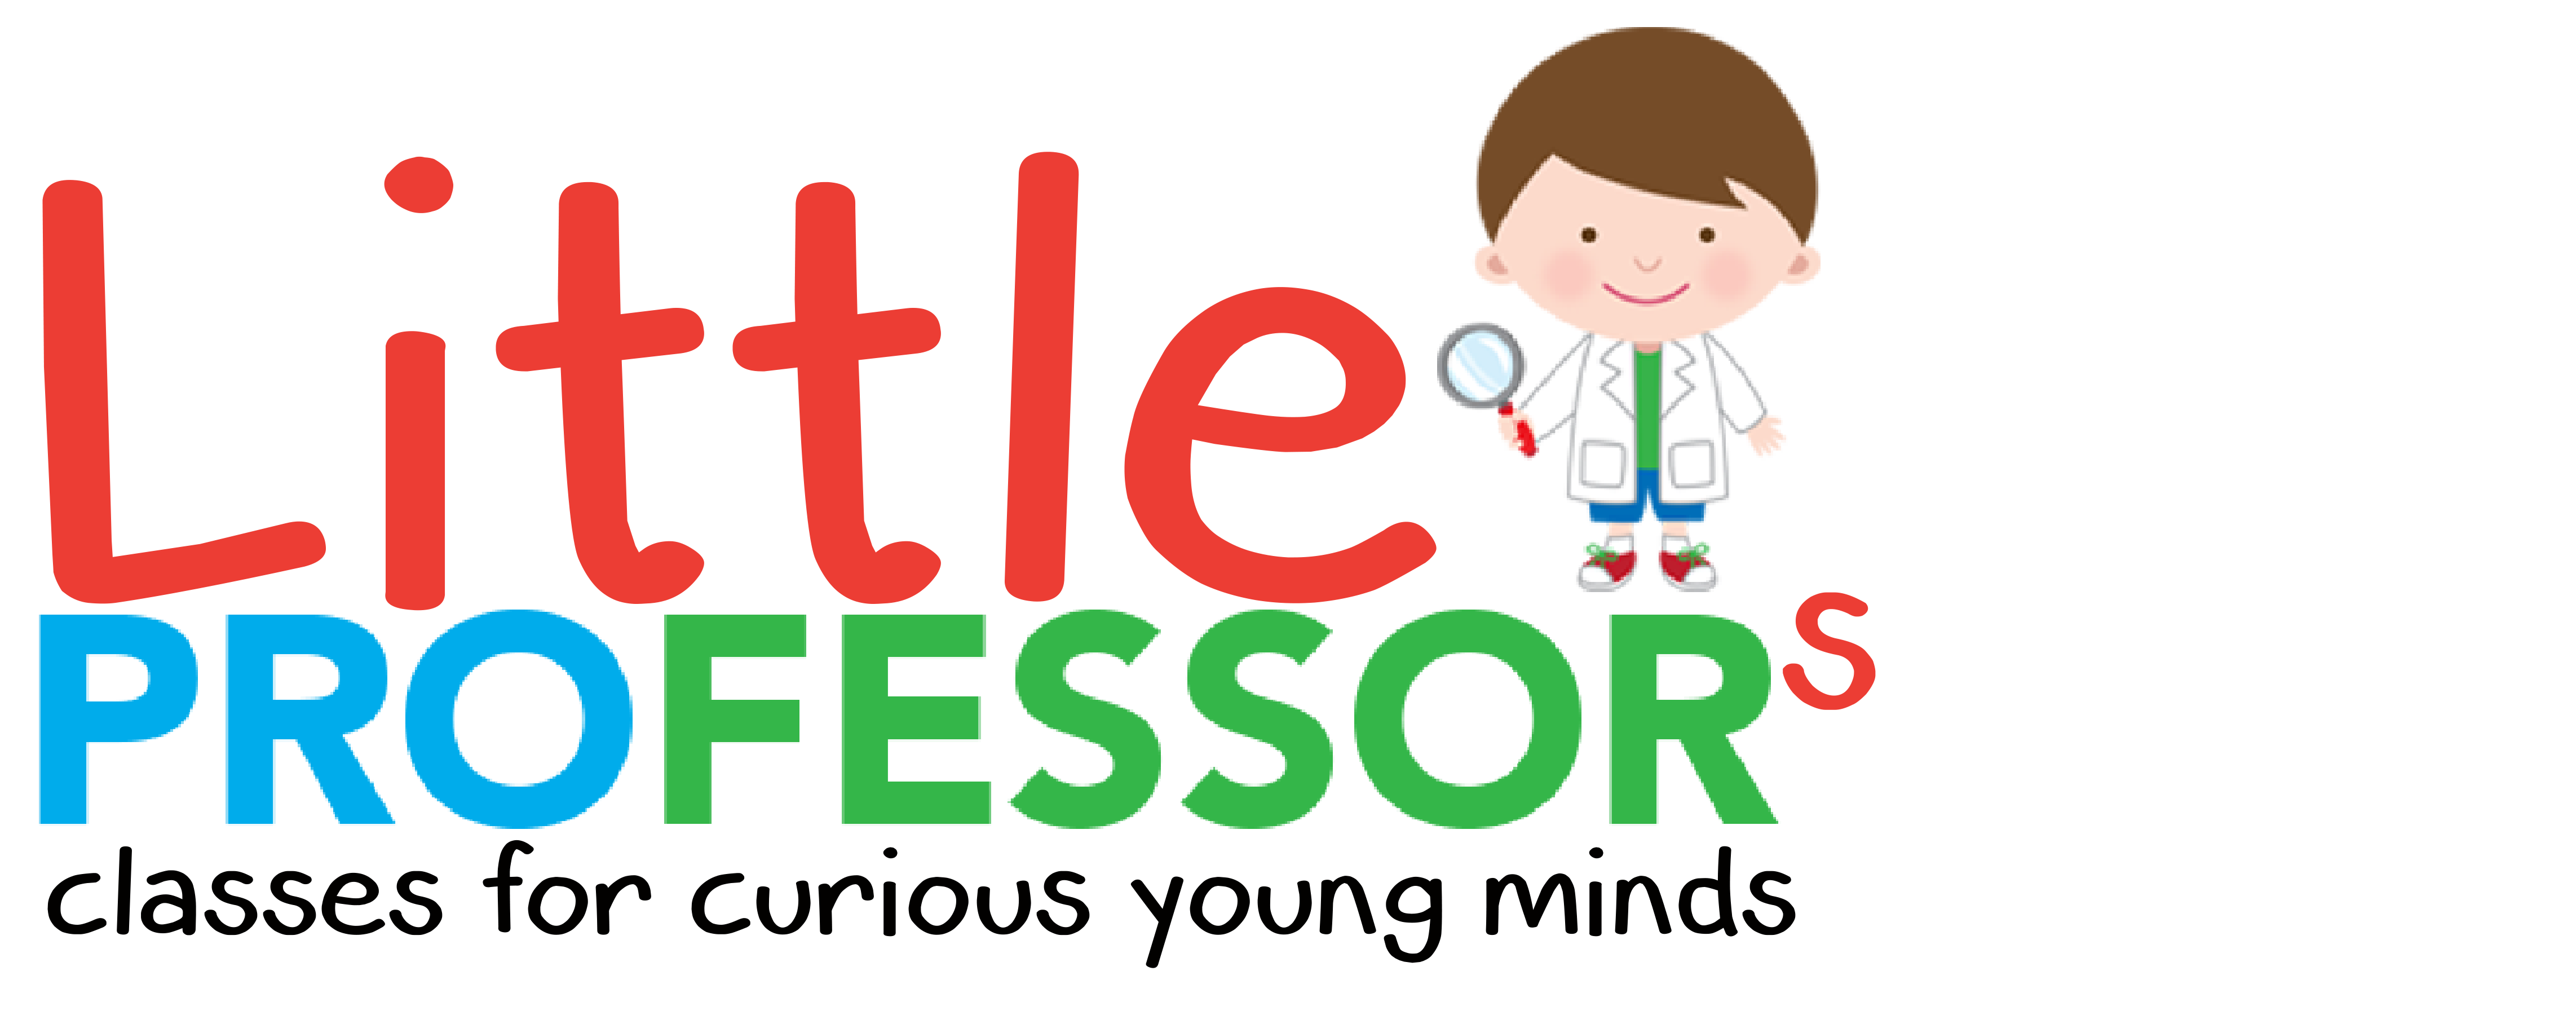 Test clipart upcoming. Little professors steam classes